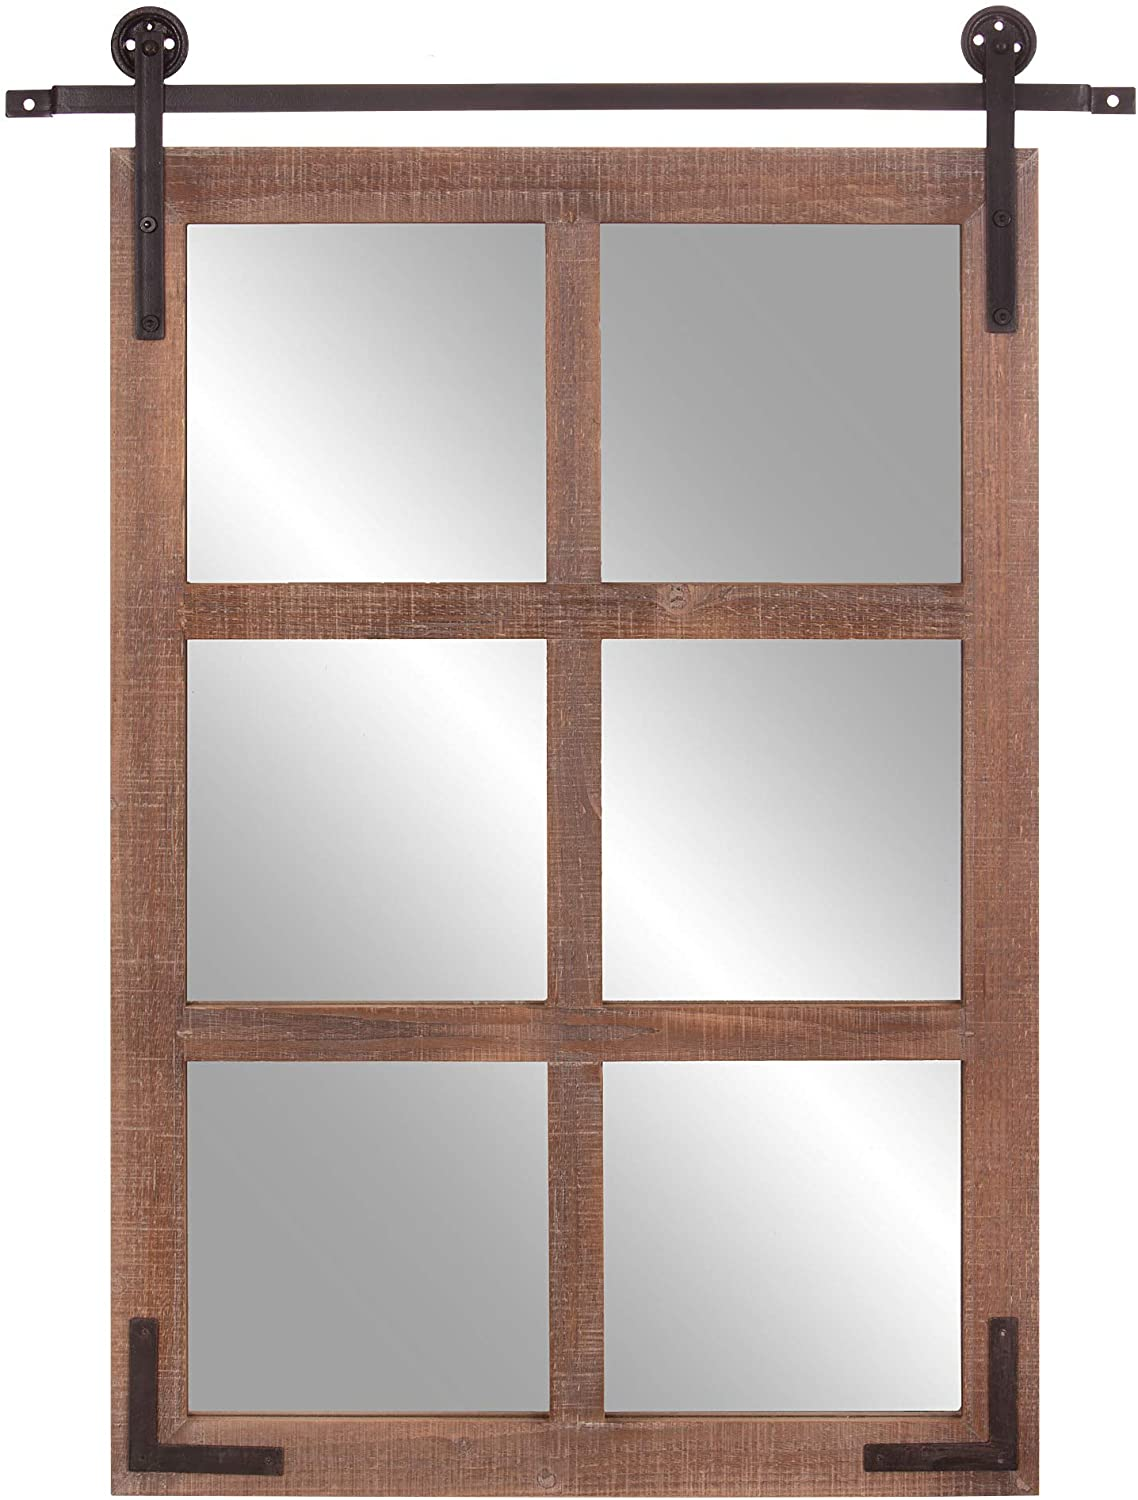 Patton Wall Decor 30x36 Sliding Barn Door Wood Window Wall Mounted Mirrors, Brown